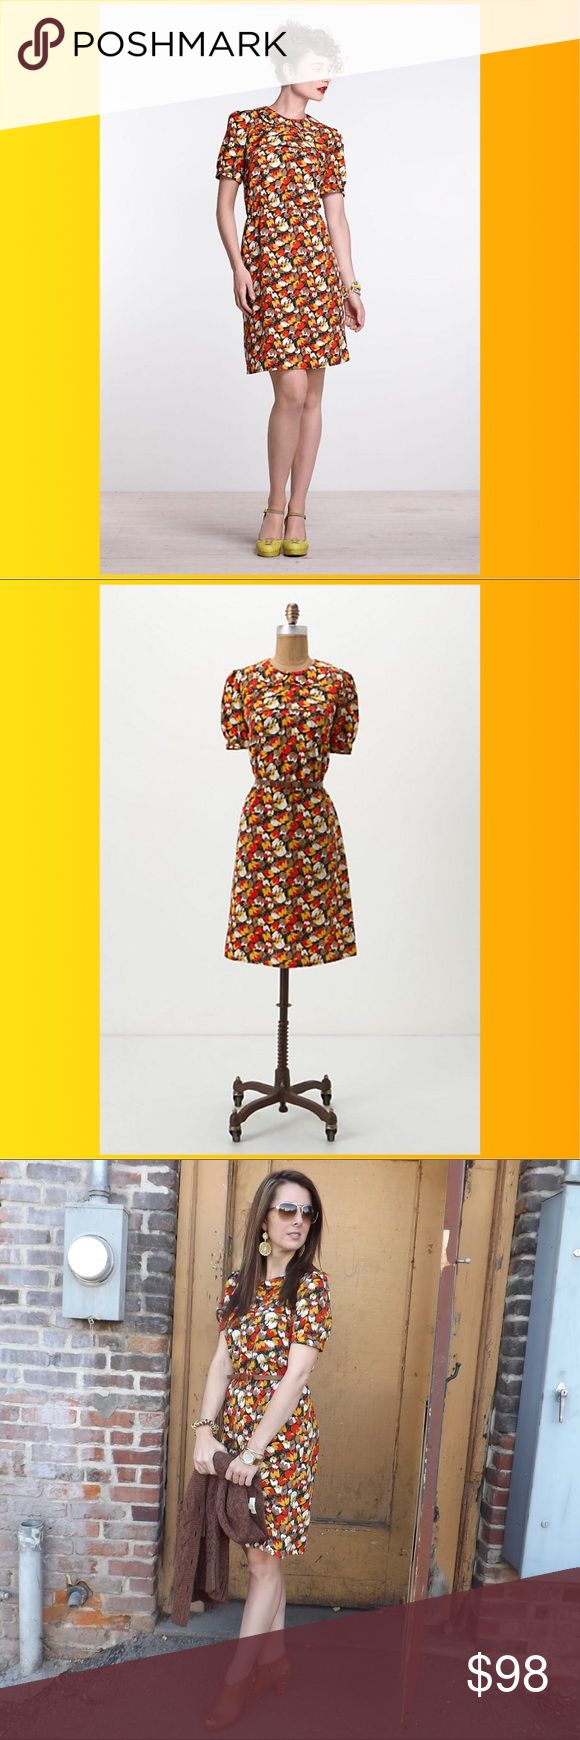 """Anthropologie Karen Walker Tiered Tulip Dress $168 🌈 Size 8. Hi There by Karen Walker from Anthropologie. Originally $168. Material is 100% polyester. Rear zipper. """"Finding inspiration in everything from vintage wallpaper to movie stills, New Zealand-based designer of the eponymous line Hi There from Karen Walker has us hooked on her primary-rich palette and retro-inspired prints. Cinched with a leather belt and topped with a peter-pan collar, this silky frock is an Anthropologie…"""